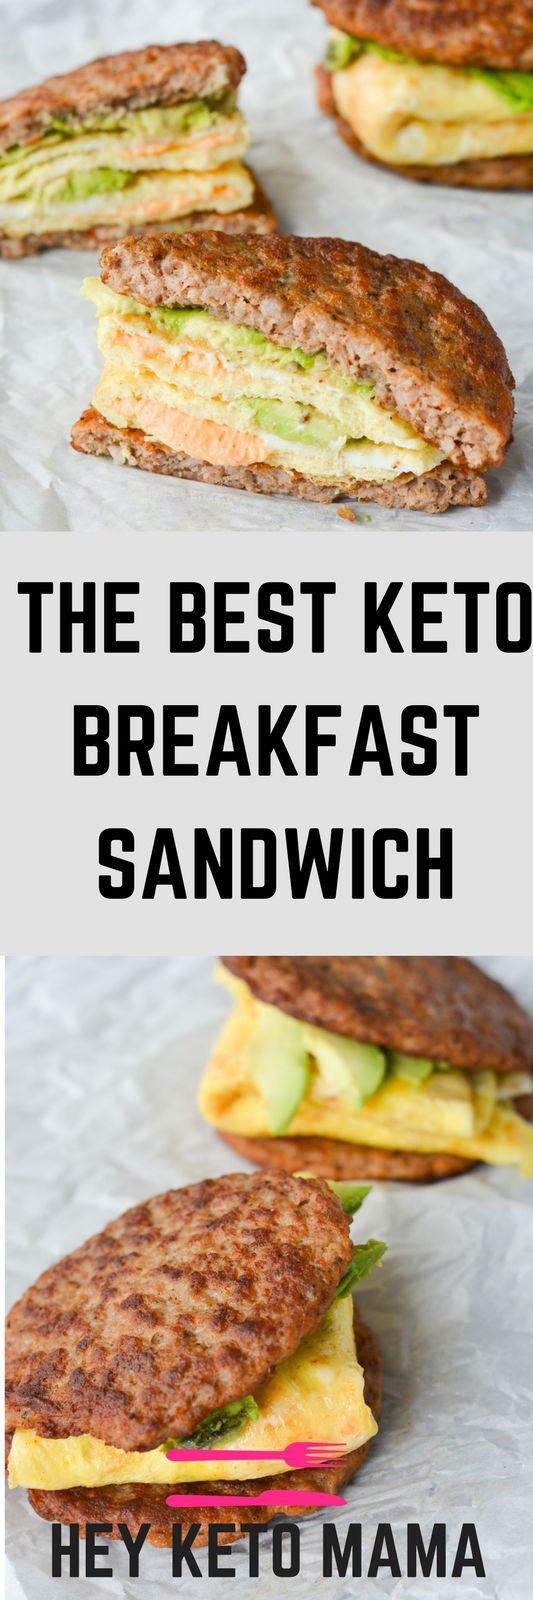 This keto breakfast sandwich is low in carbs, high in healthy fats and off the charts in flavor! The yummy sausage will make you forget the missing bread!